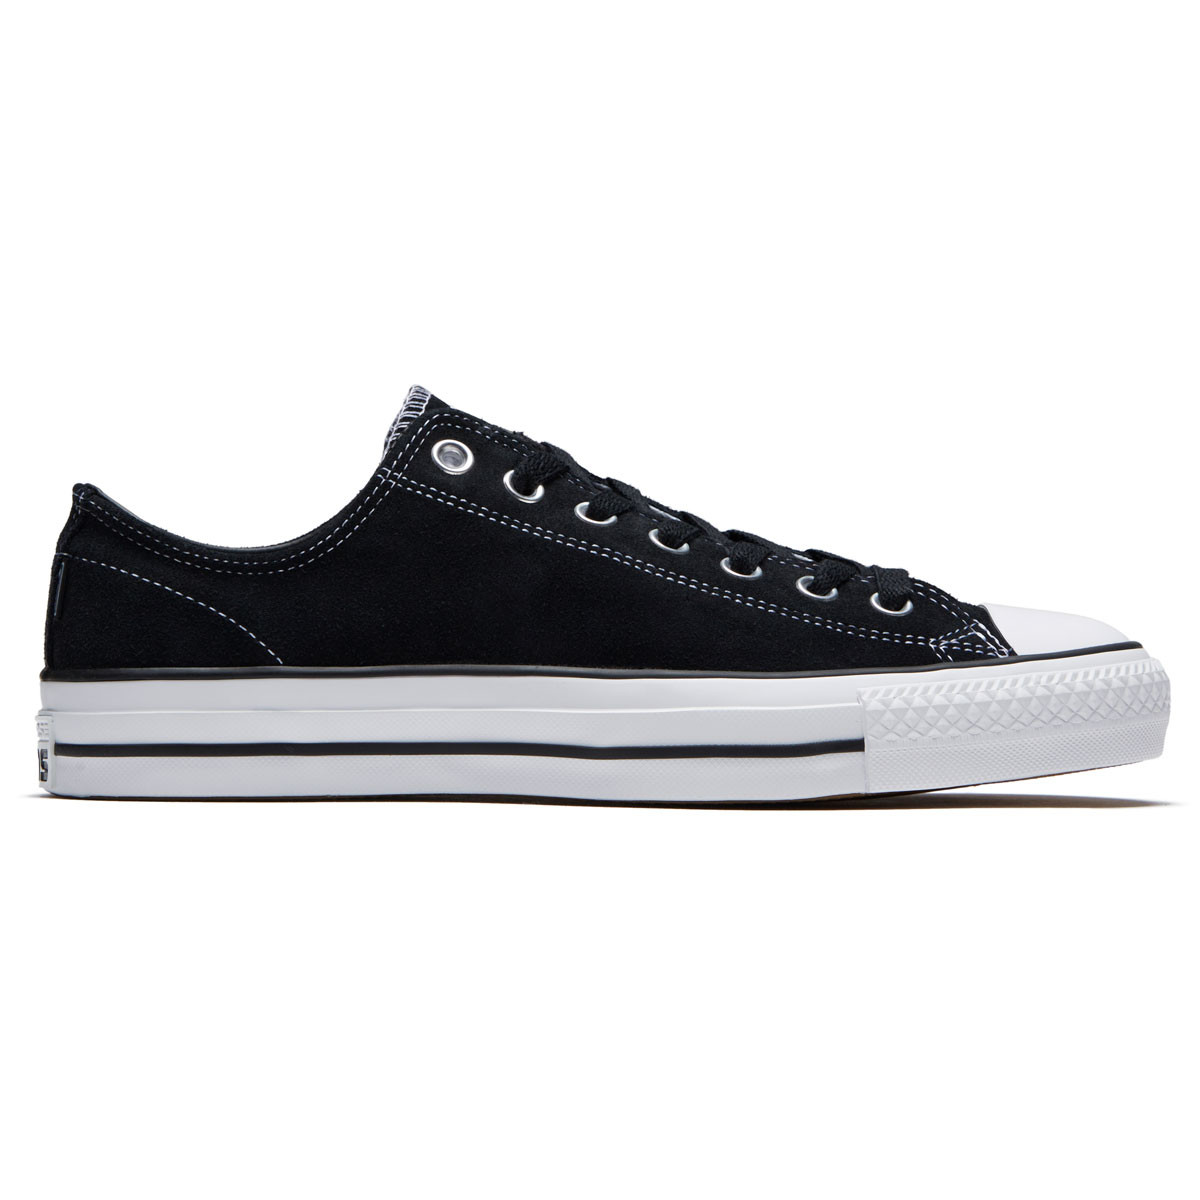 Converse CTAS Pro OX Suede Backed Shoes